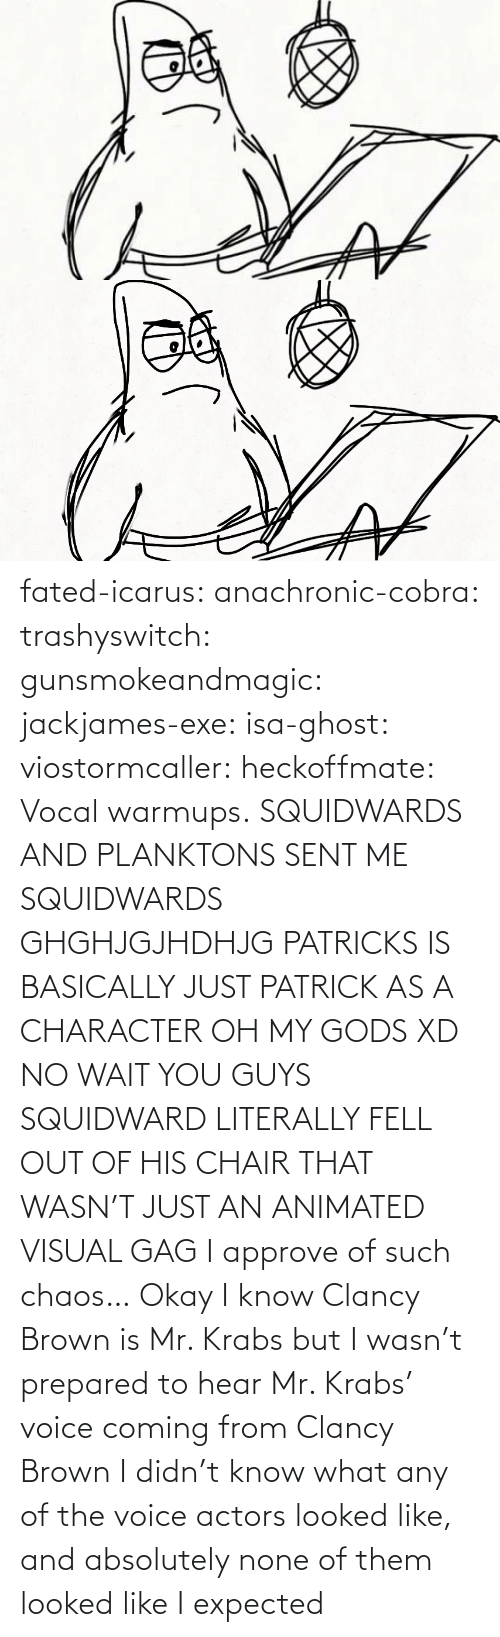 gag: fated-icarus:  anachronic-cobra: trashyswitch:  gunsmokeandmagic:  jackjames-exe:  isa-ghost:   viostormcaller:  heckoffmate: Vocal warmups. SQUIDWARDS AND PLANKTONS SENT ME  SQUIDWARDS GHGHJGJHDHJG   PATRICKS IS BASICALLY JUST PATRICK AS A CHARACTER OH MY GODS XD   NO WAIT YOU GUYS SQUIDWARD LITERALLY FELL OUT OF HIS CHAIR THAT WASN'T JUST AN ANIMATED VISUAL GAG    I approve of such chaos…    Okay I know Clancy Brown is Mr. Krabs but I wasn't prepared to hear Mr. Krabs' voice coming from Clancy Brown    I didn't know what any of the voice actors looked like, and absolutely none of them looked like I expected